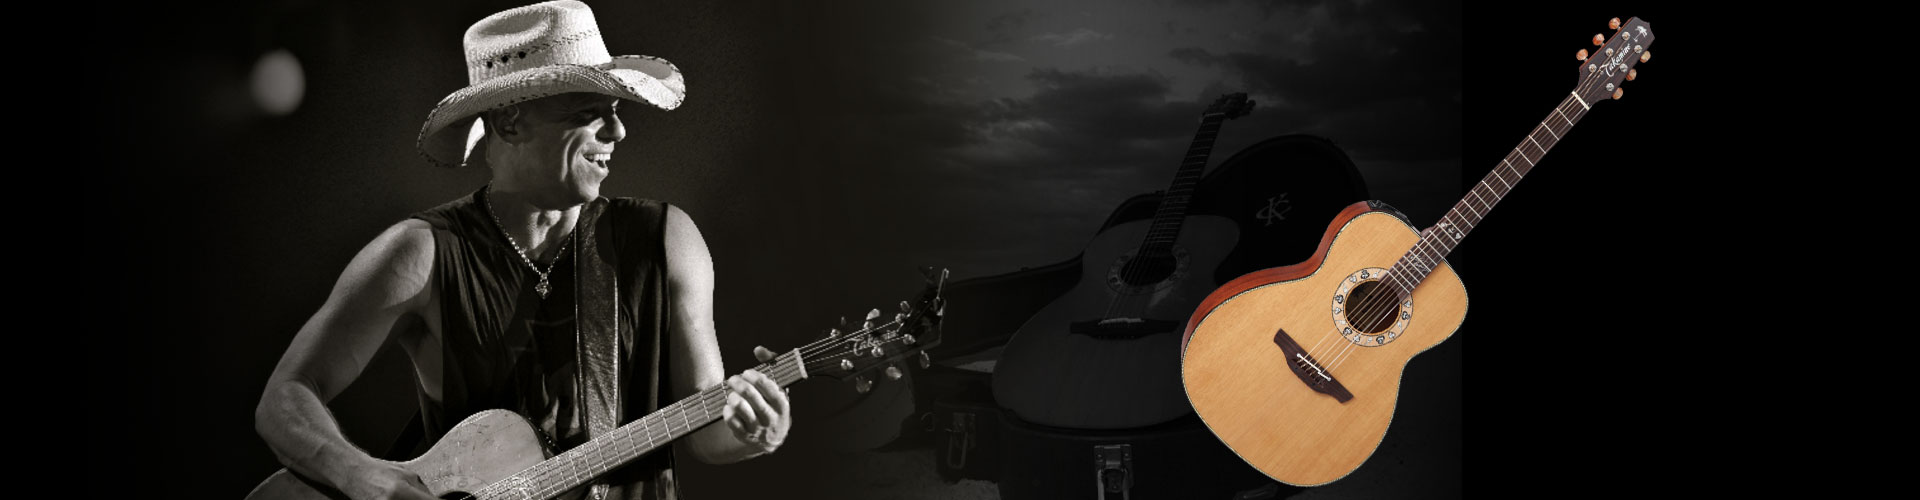 Takamine Signature model #4 - Kenny Chesney